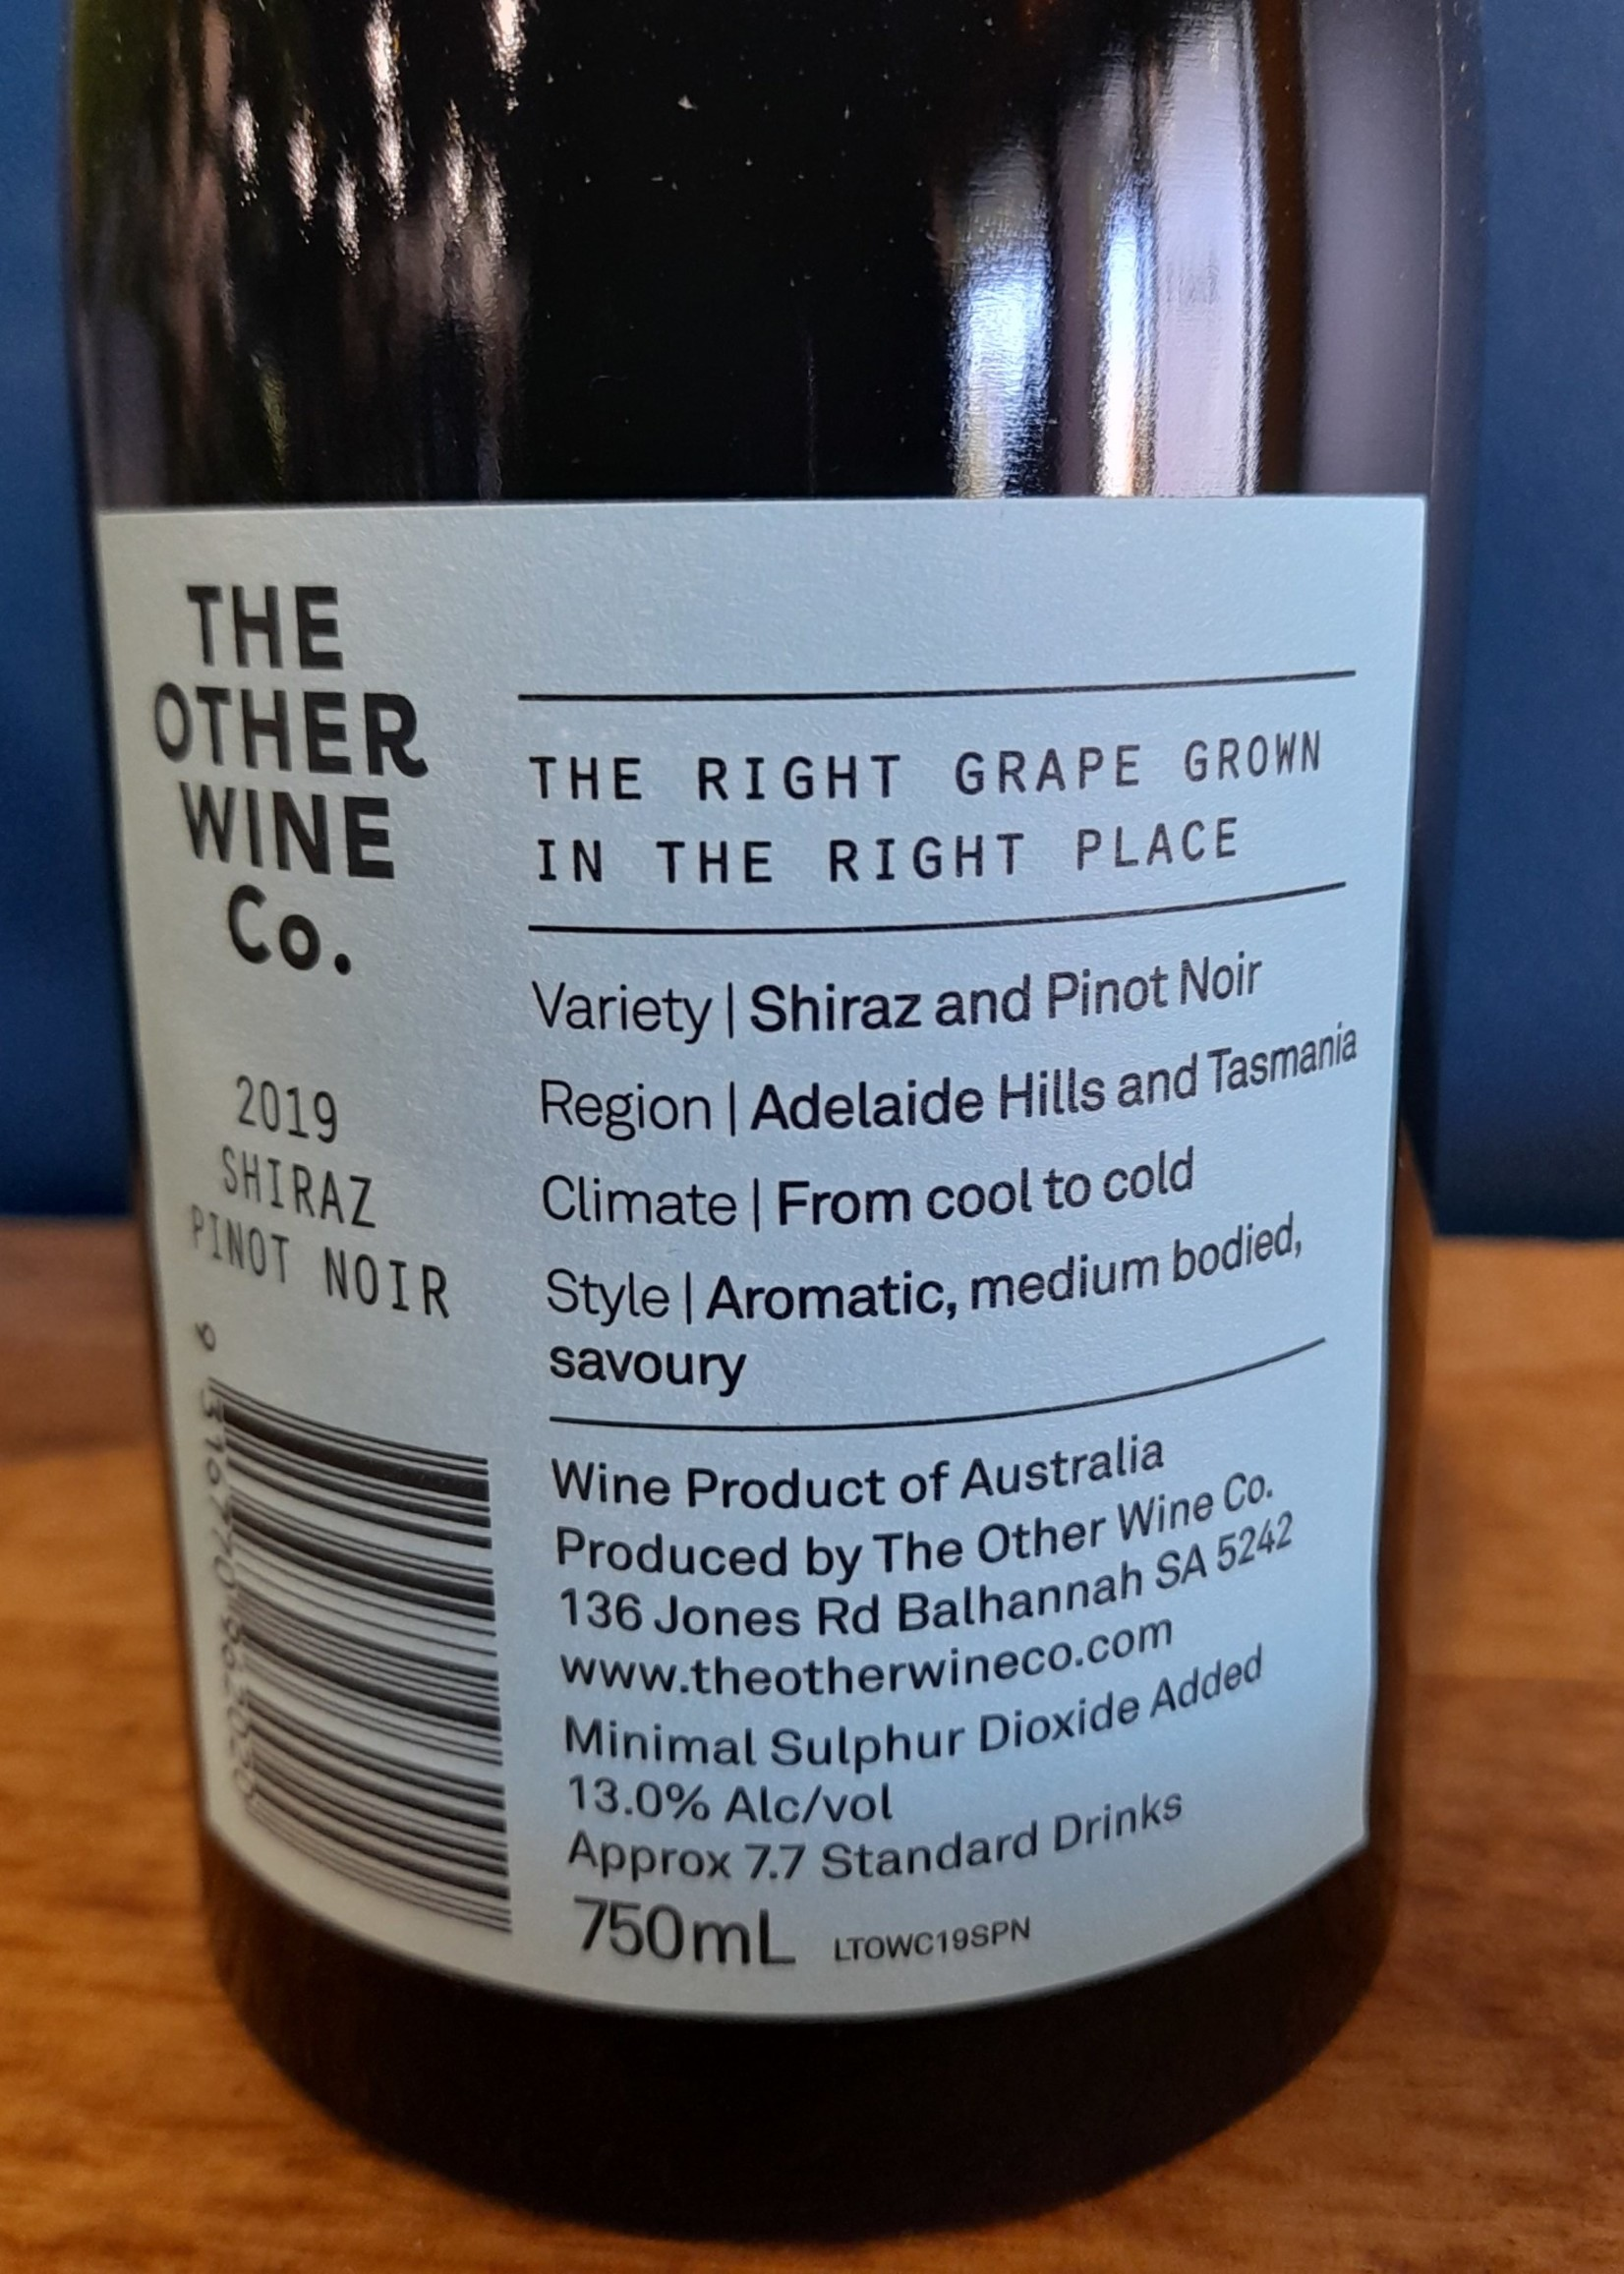 The Other Wine Co. The Other Wine Co Shiraz Pinot Noir 2019